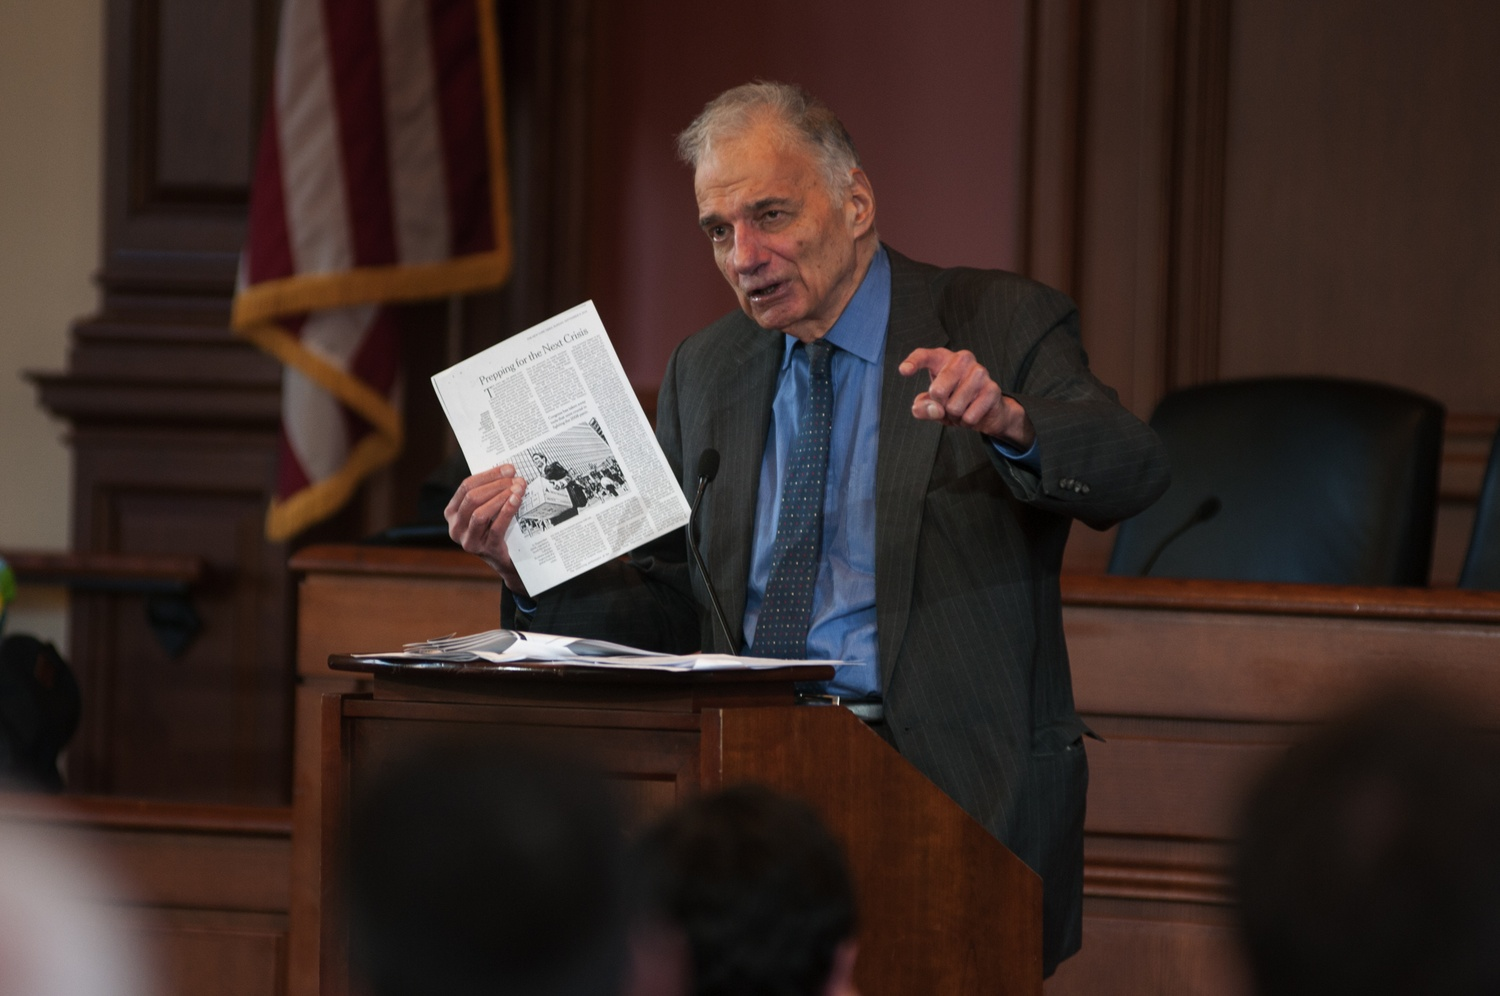 Ralph Nader argued for the importance of public interest law during a talk Thursday.